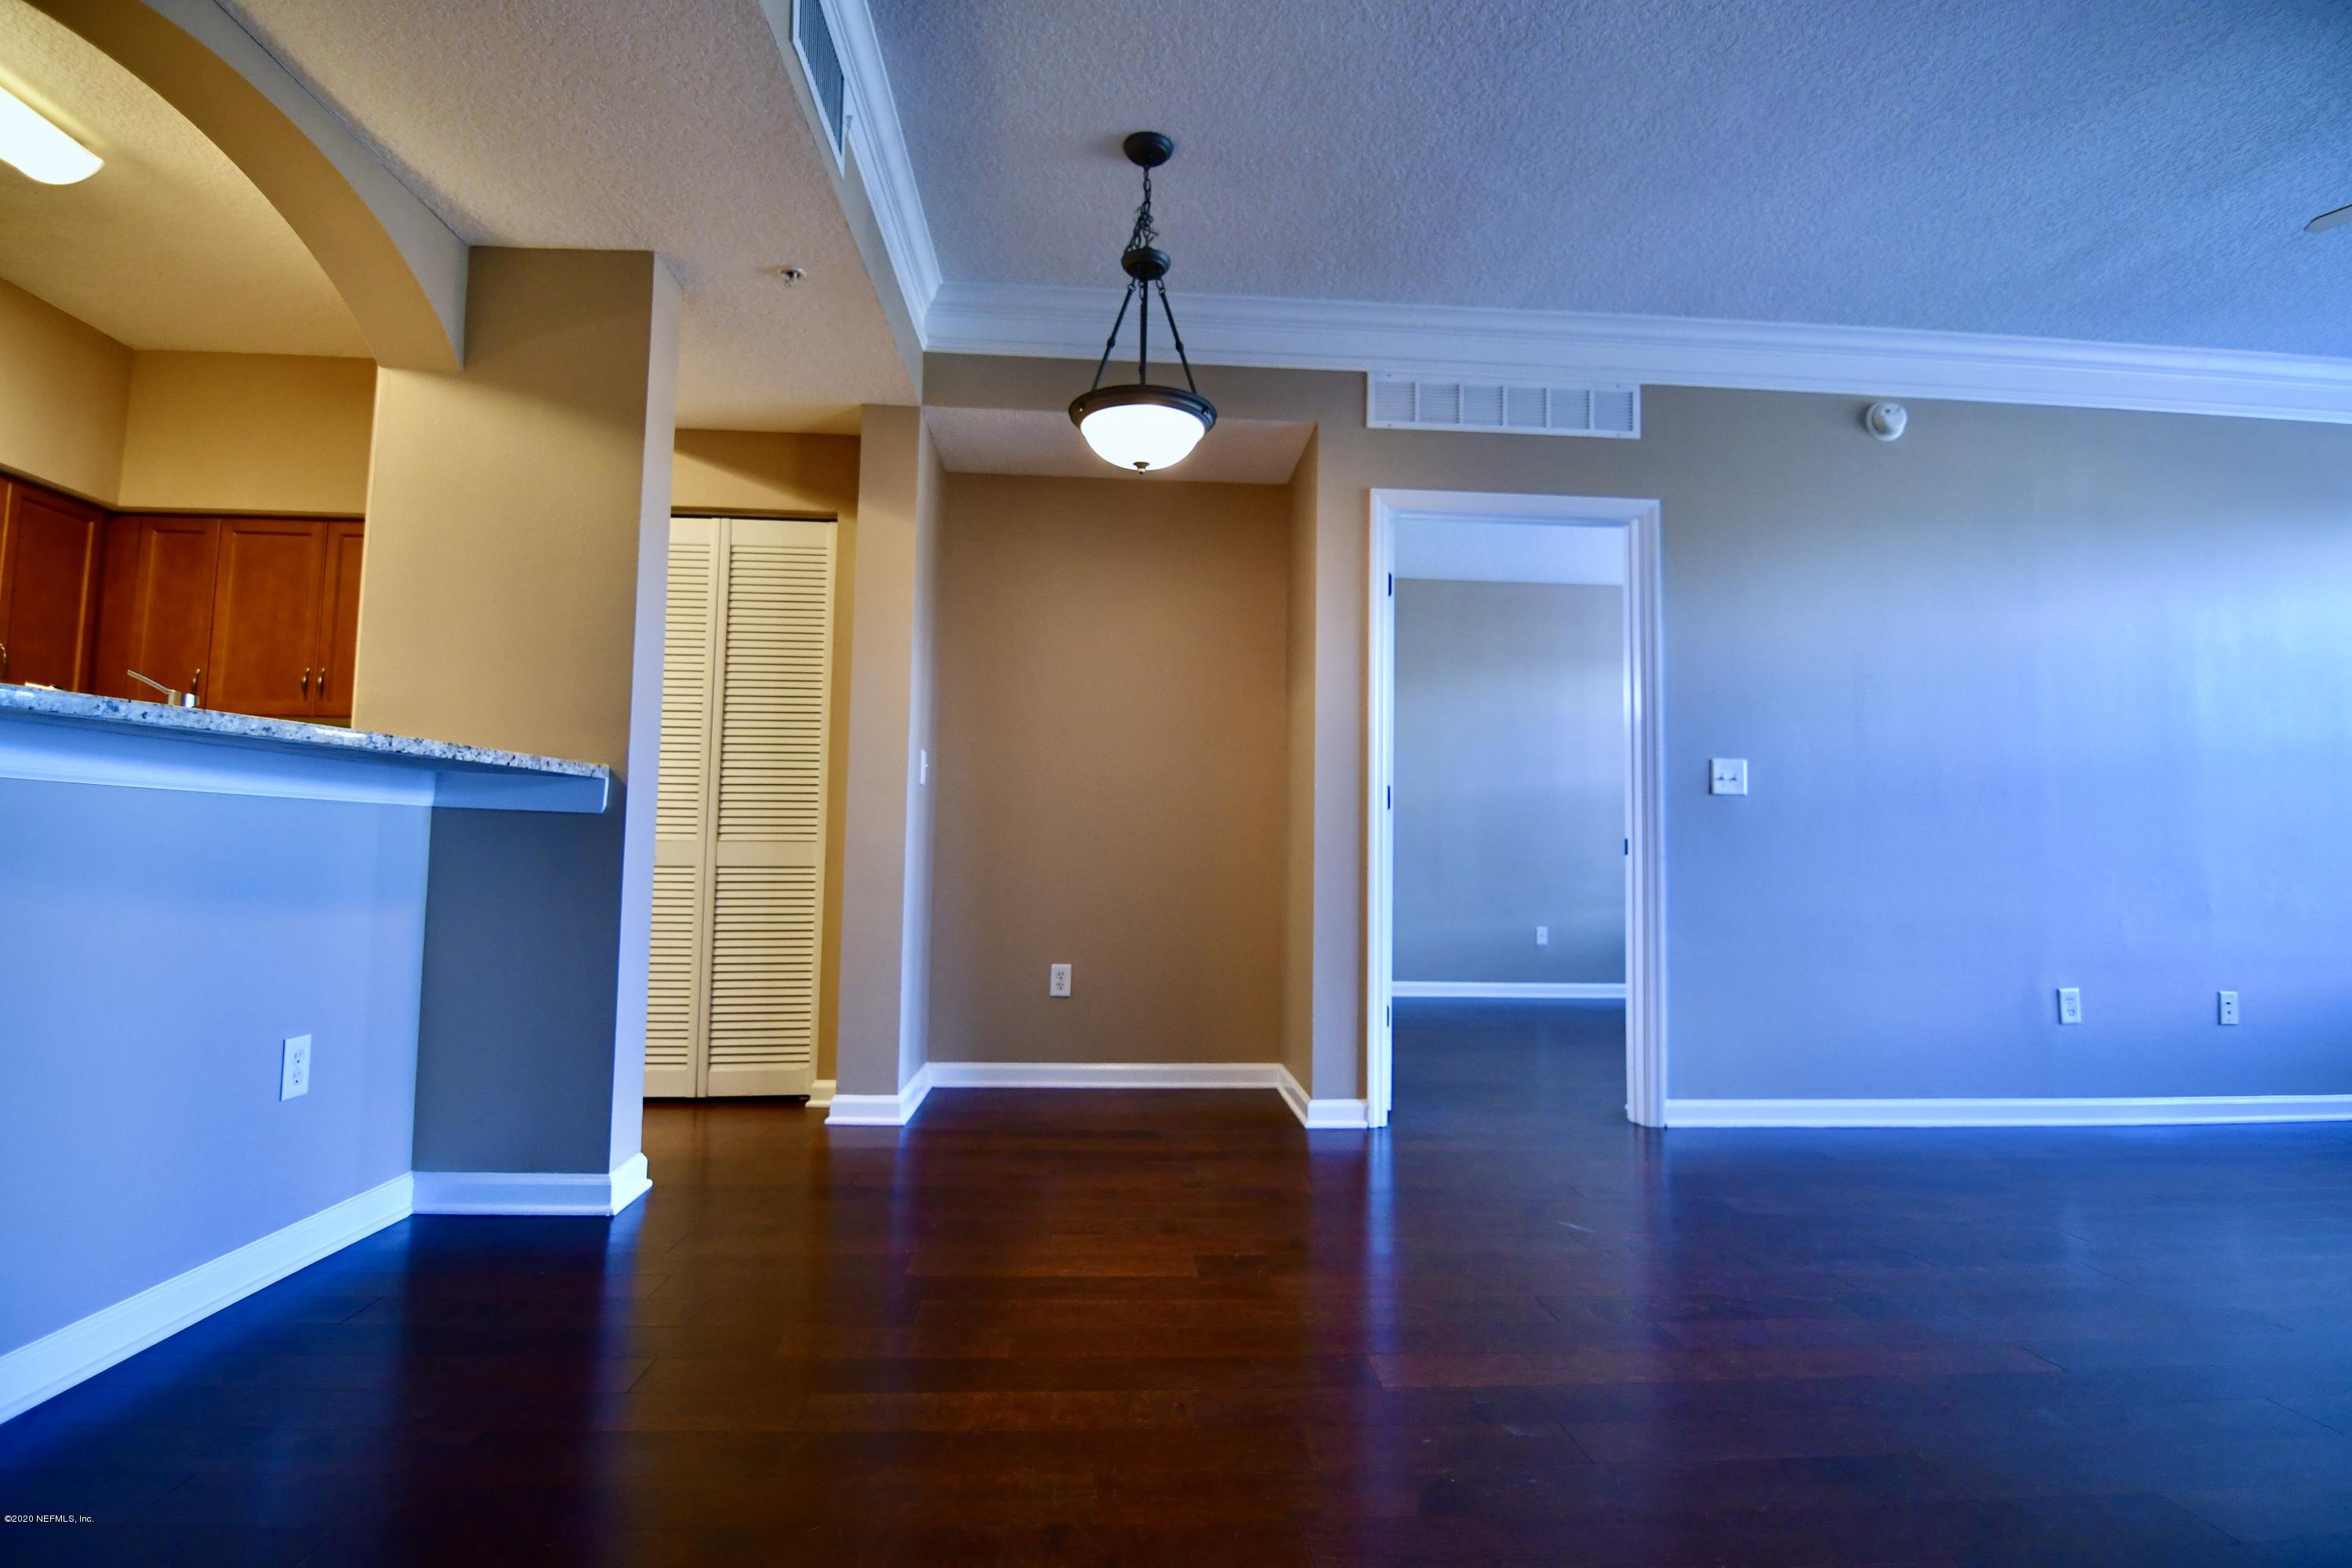 10435 MIDTOWN, JACKSONVILLE, FLORIDA 32246, 2 Bedrooms Bedrooms, ,2 BathroomsBathrooms,Residential,For sale,MIDTOWN,1029083